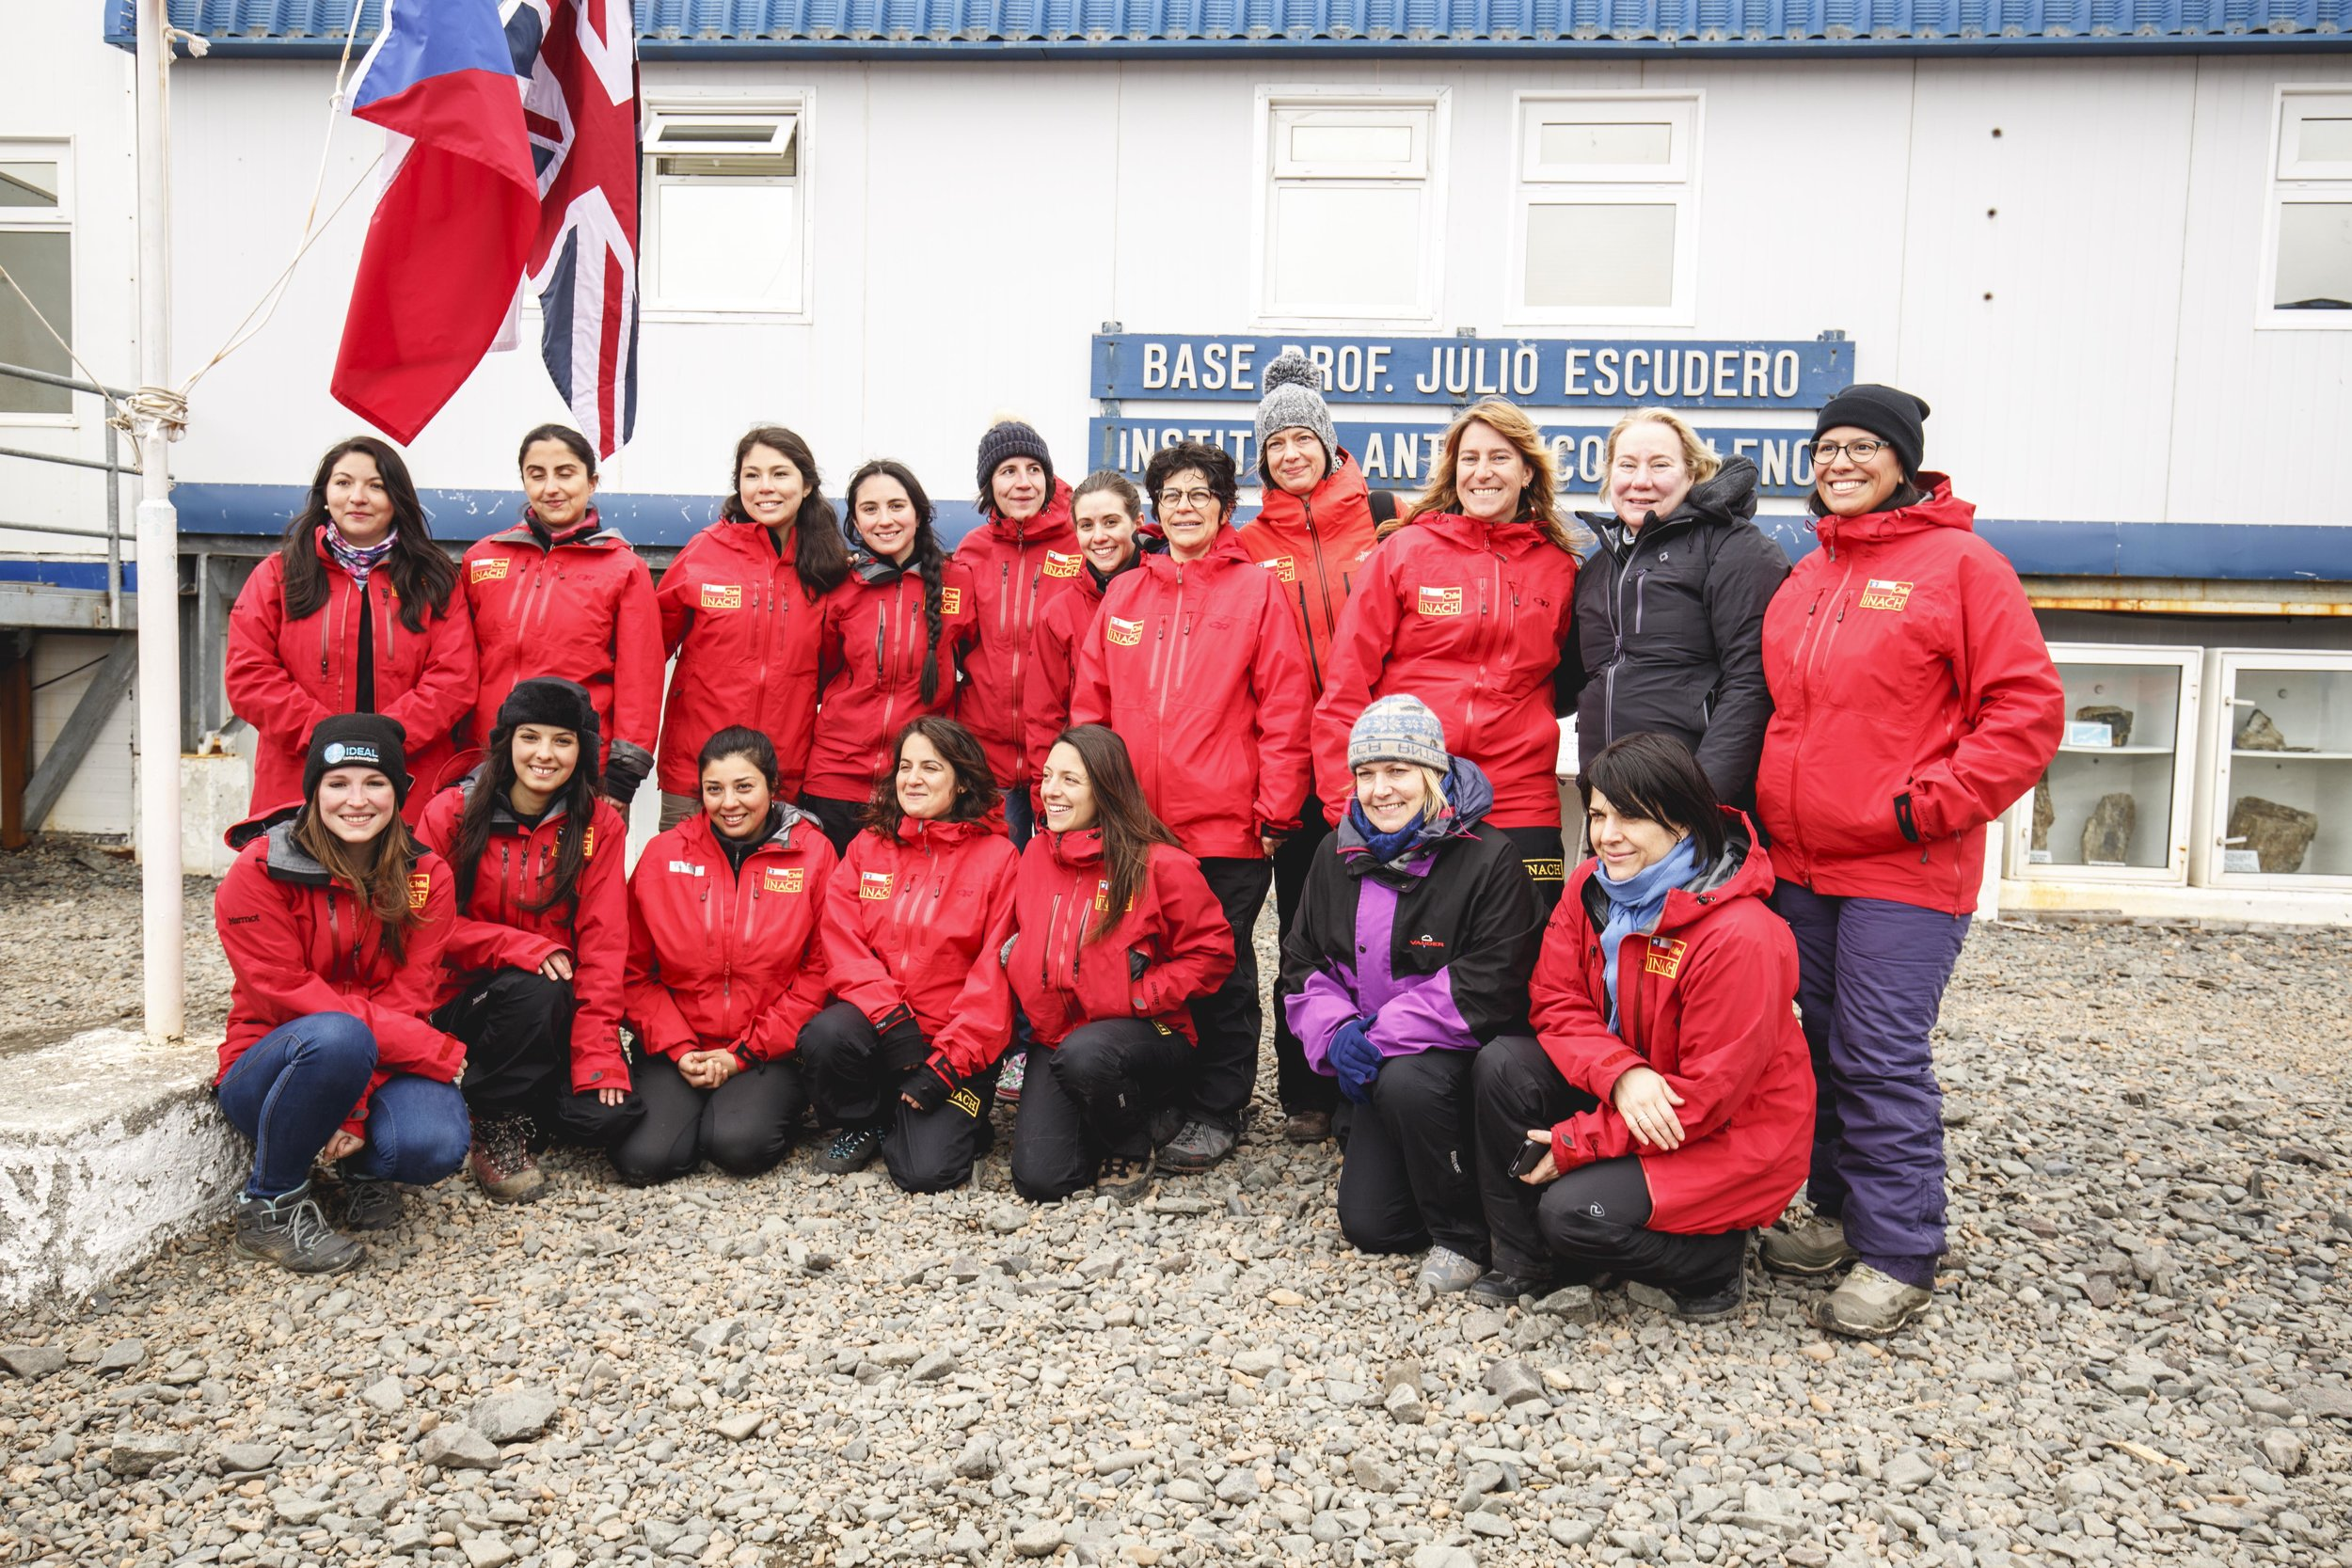 Dr Olivarius at the Futures Congress excursion to Antarctica (photo credit Álvaro Soto Valle)